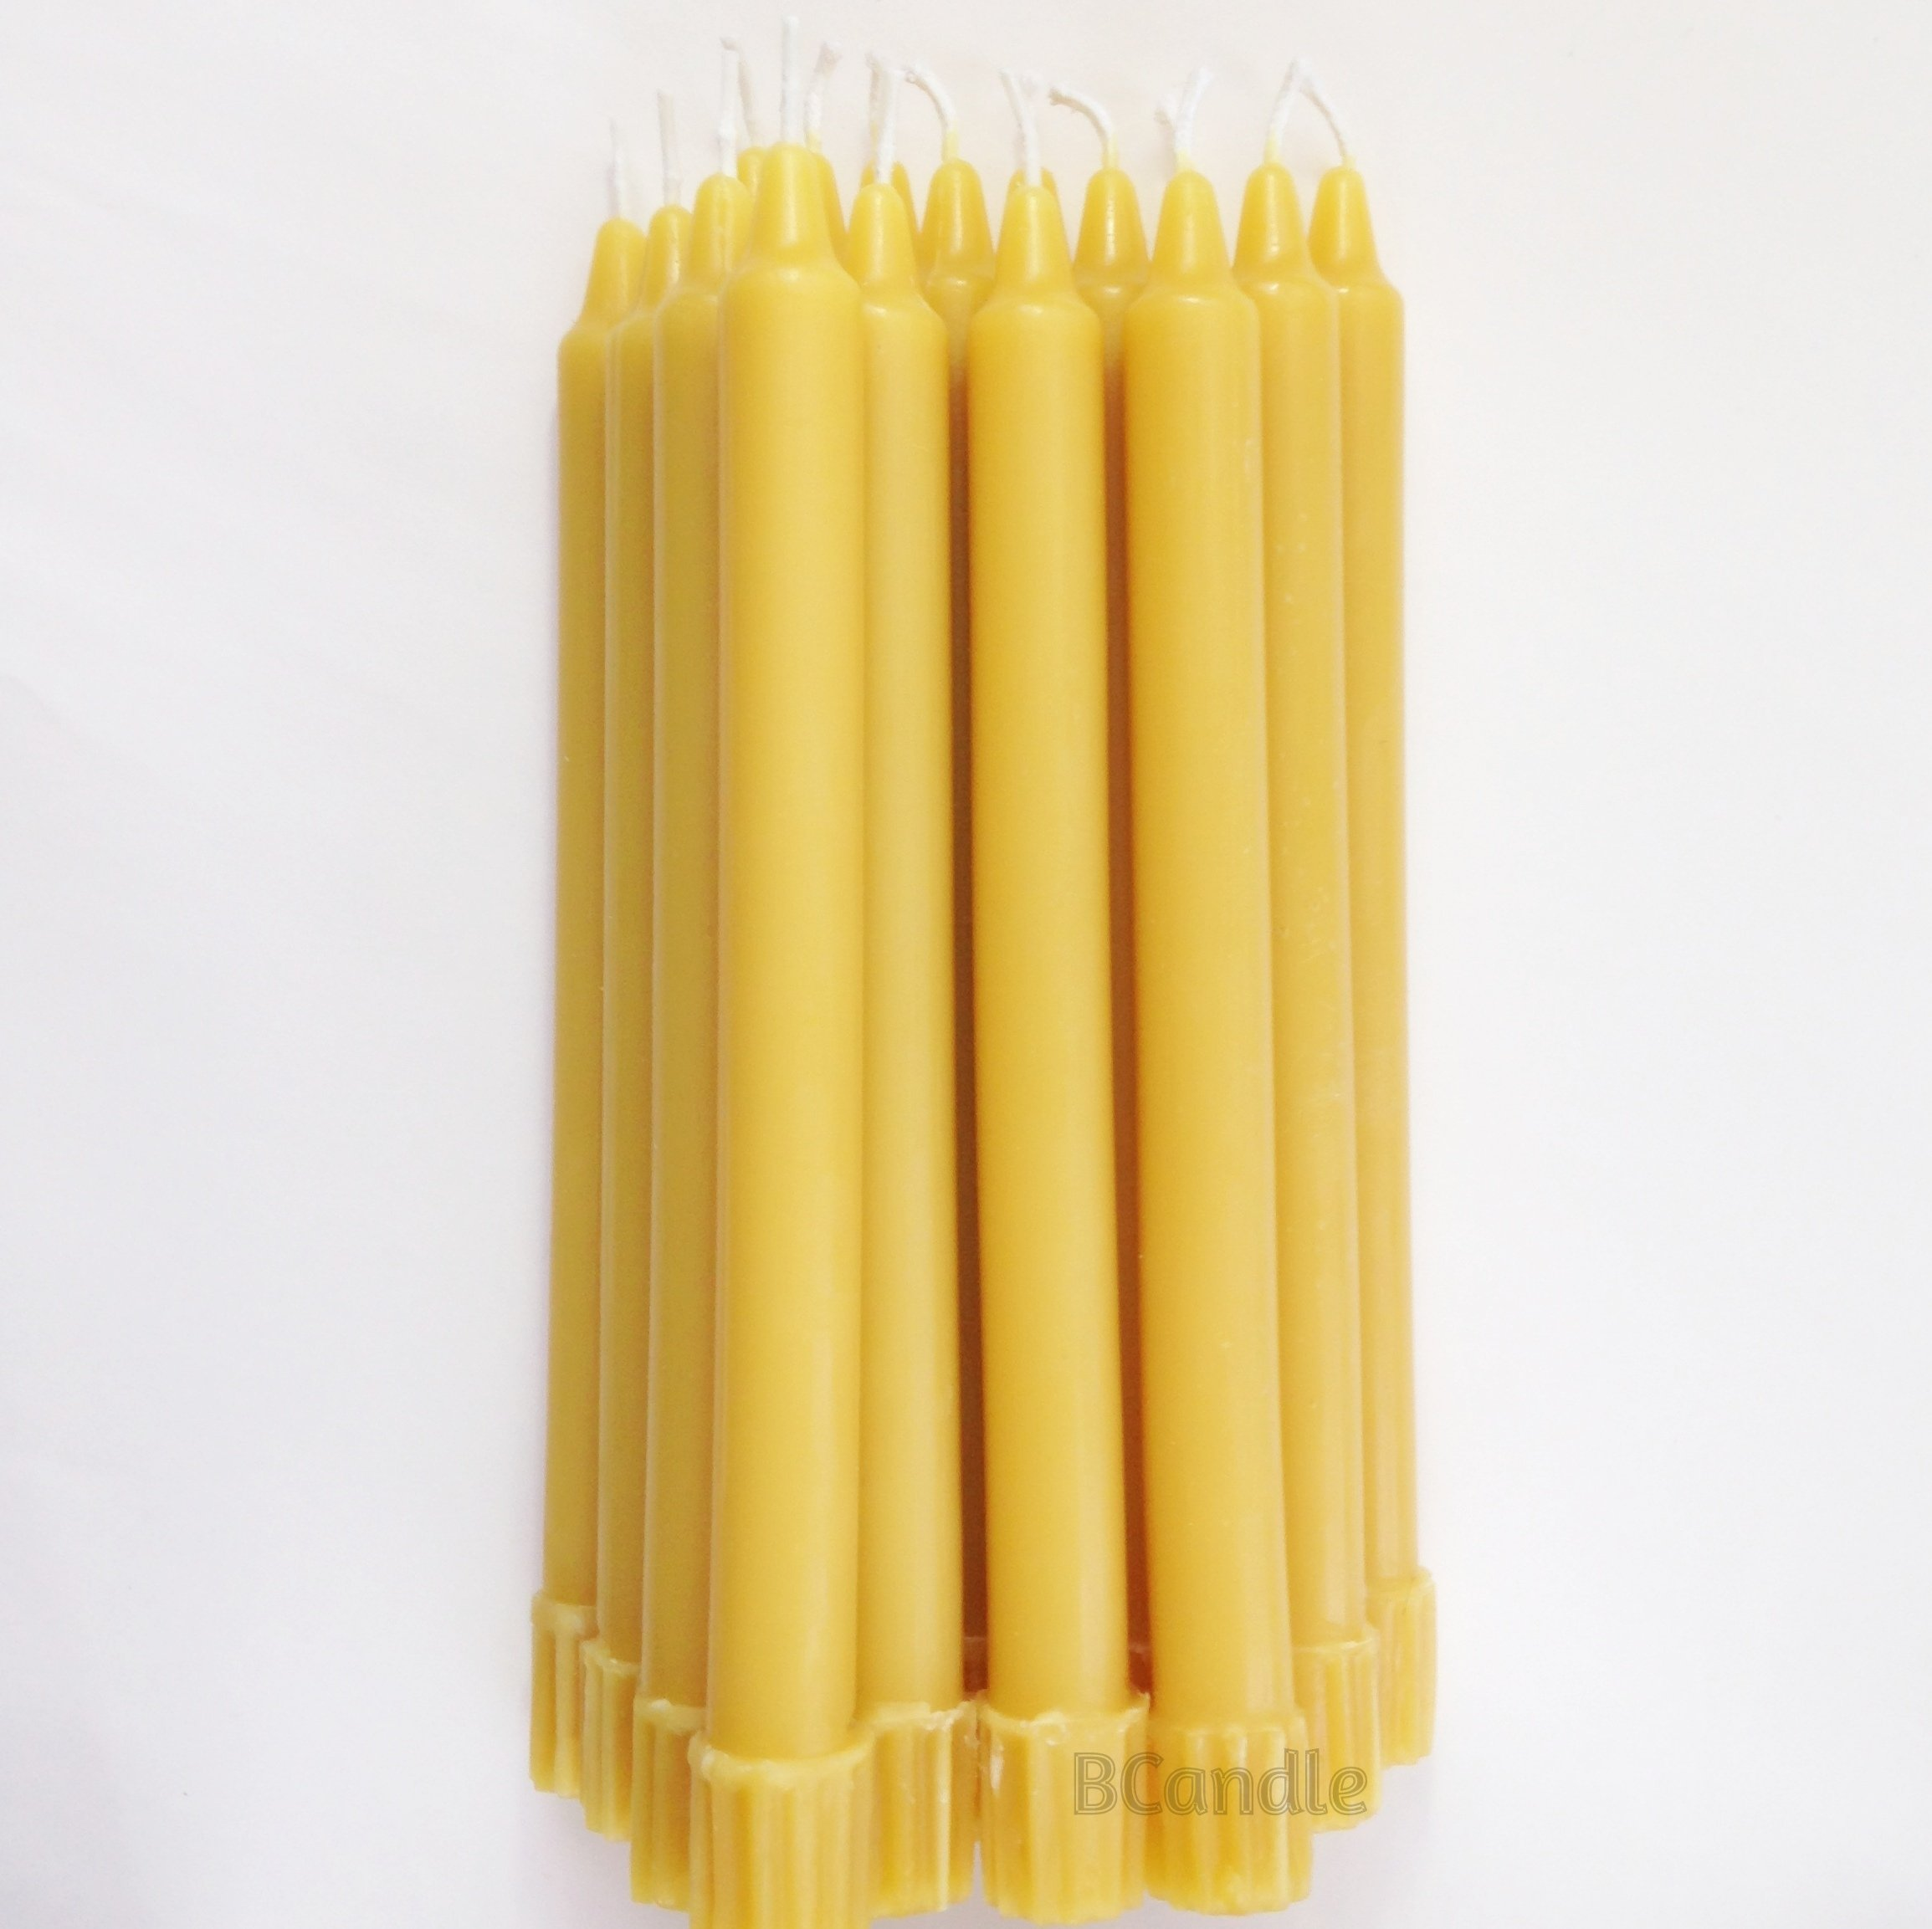 BCandle 100% Pure Beeswax Candles (Set of 16) 8-Hour Organic Hand Made - 8 Inches Tall, 3/4 Inch Diameter; Tapers